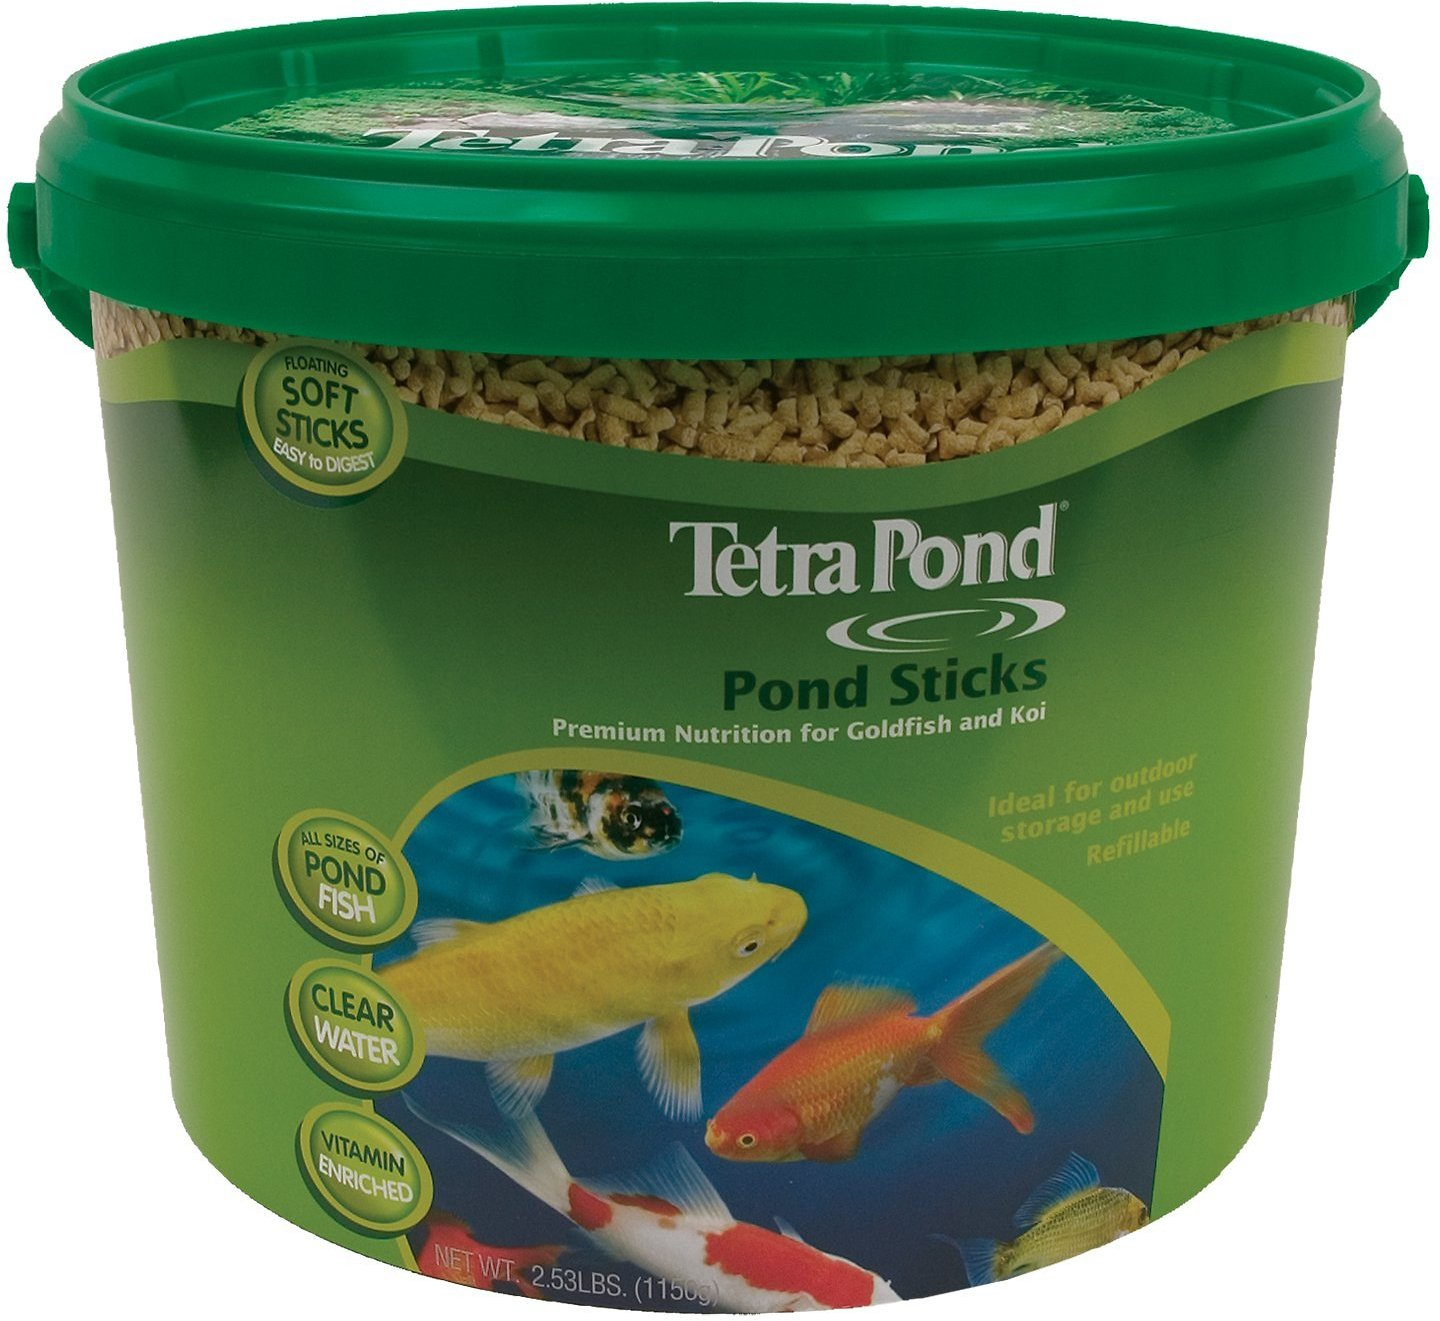 Tetra pond sticks goldfish koi fish food bucket for Pond fish food